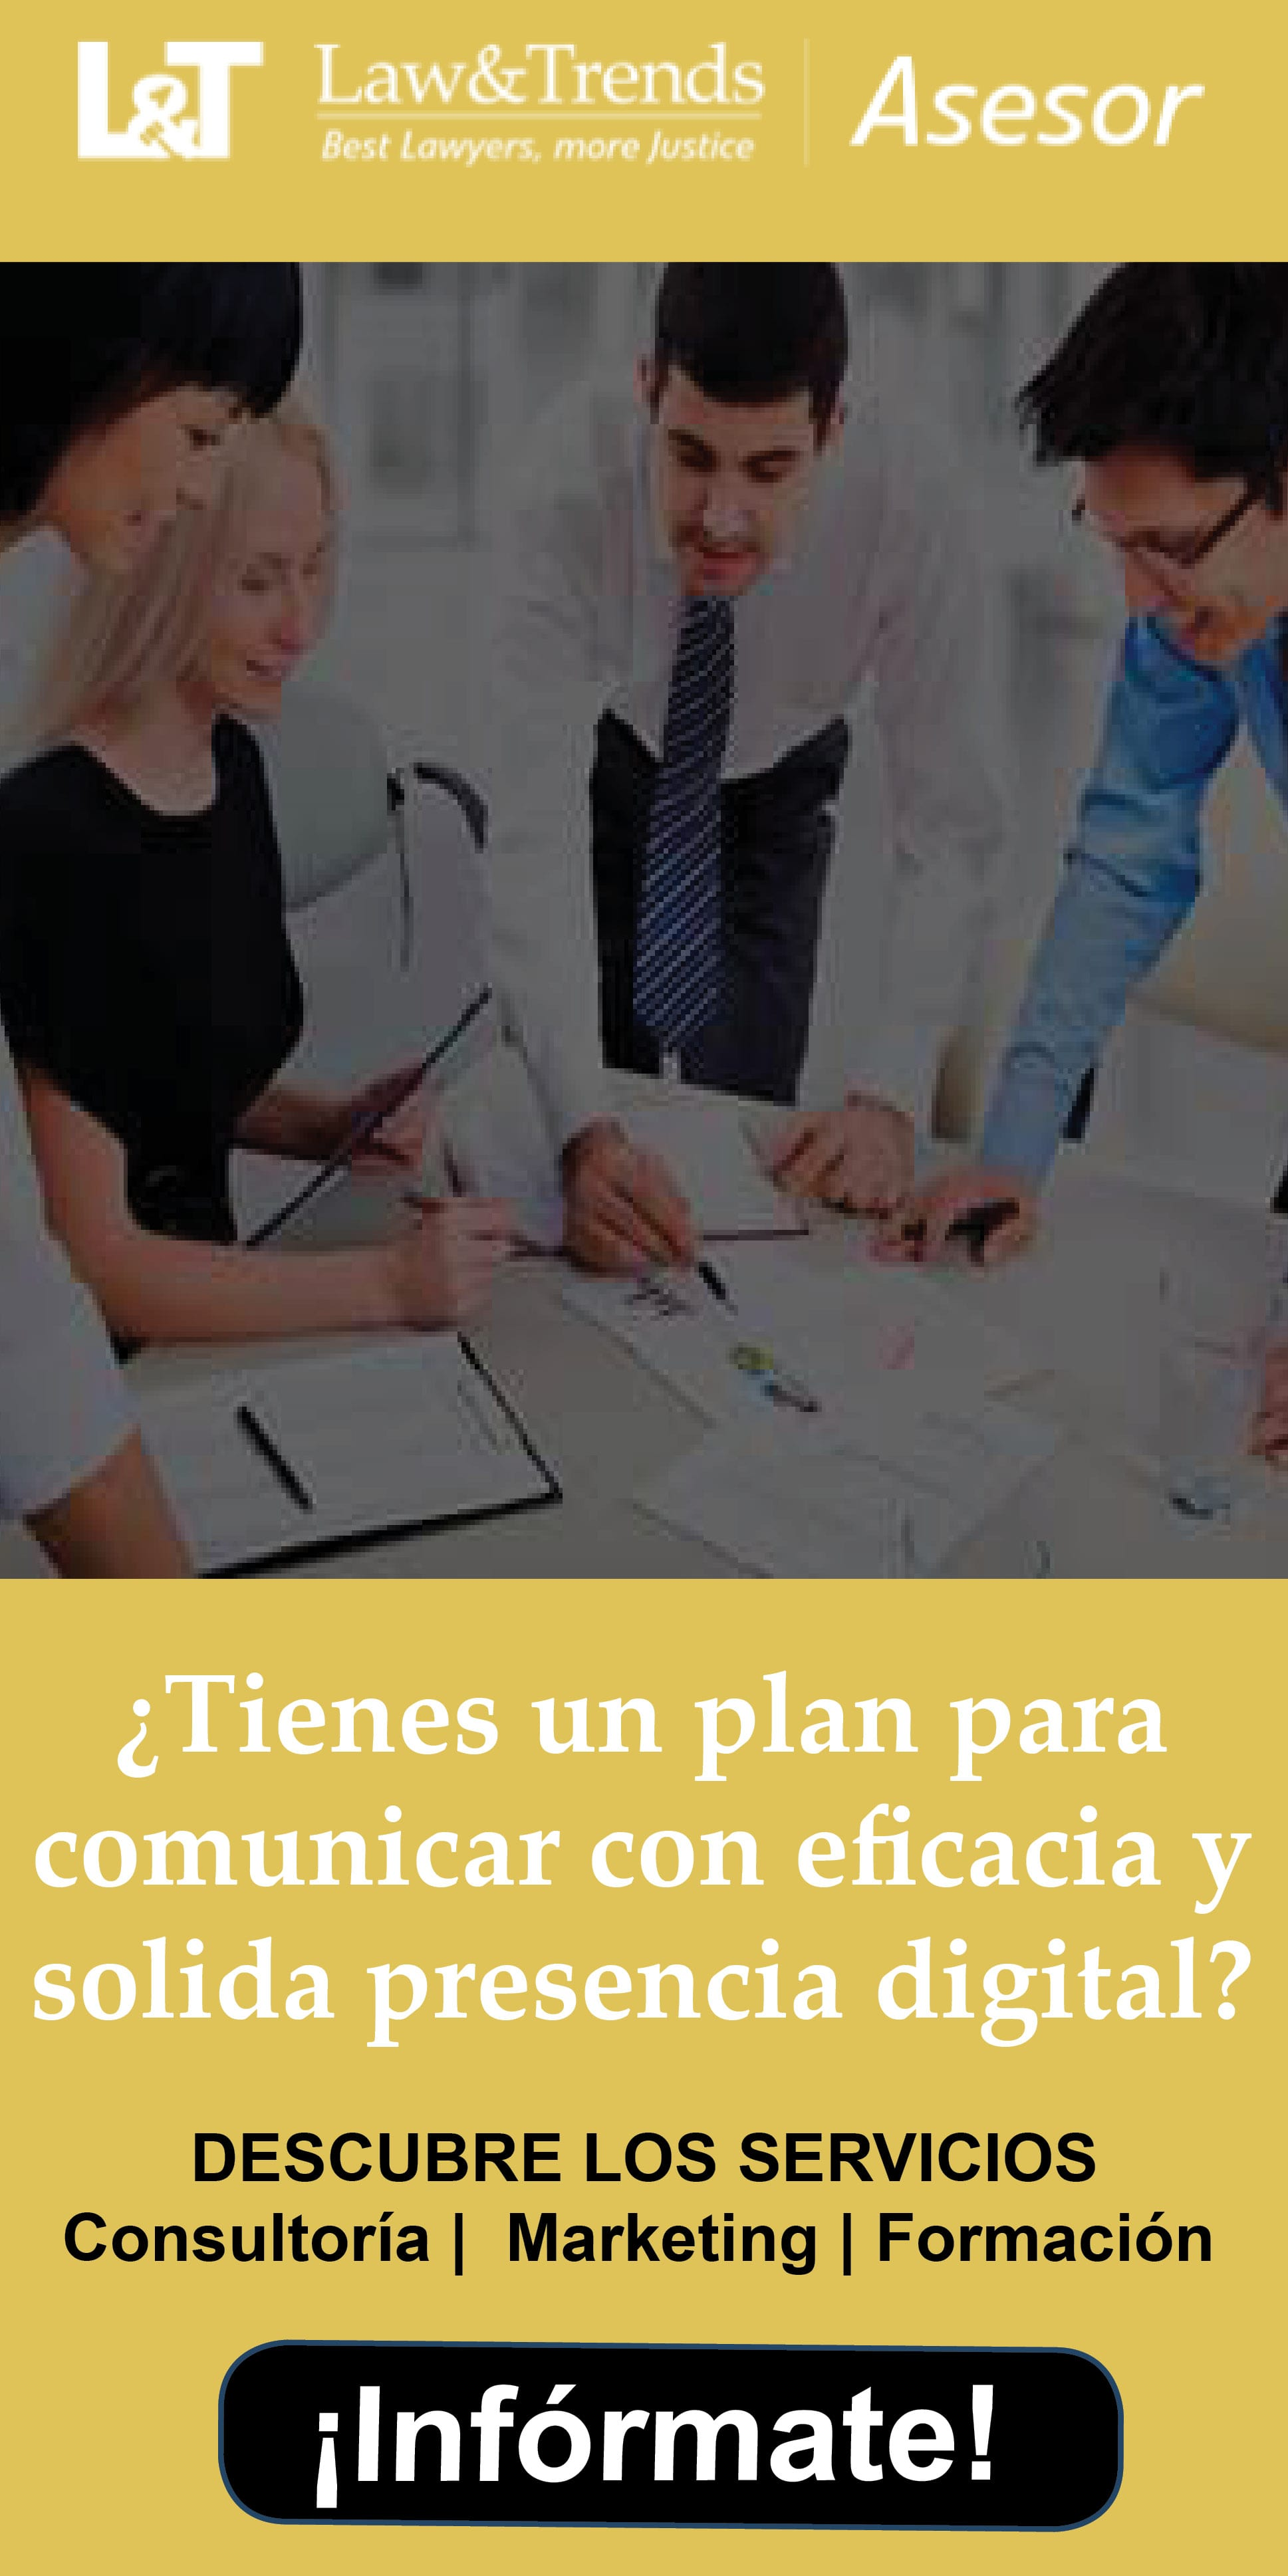 Asesor es el servicio de marketing juridico y de consultor�a legal de Law&Trends para despachos de abogados y profesionales jur�dicos